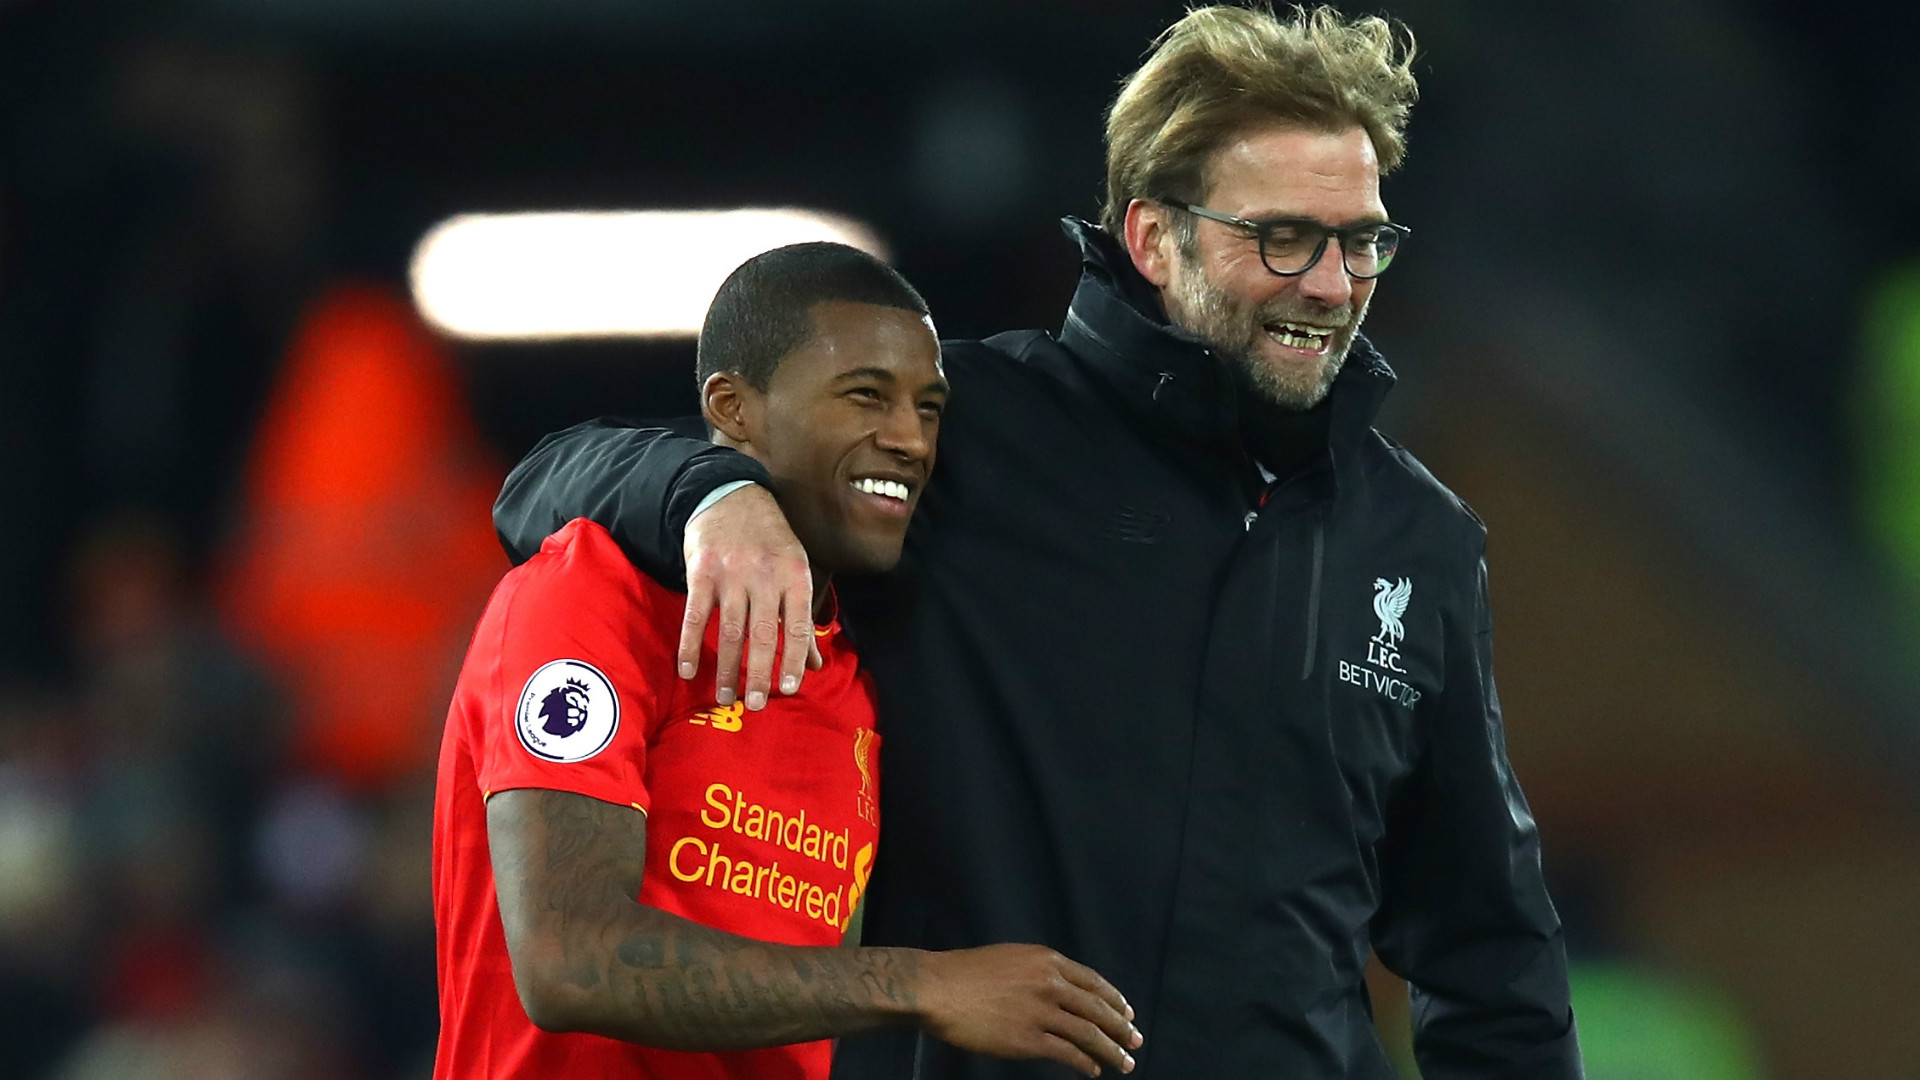 Liverpool can attract top talent, says manager Jurgen Klopp